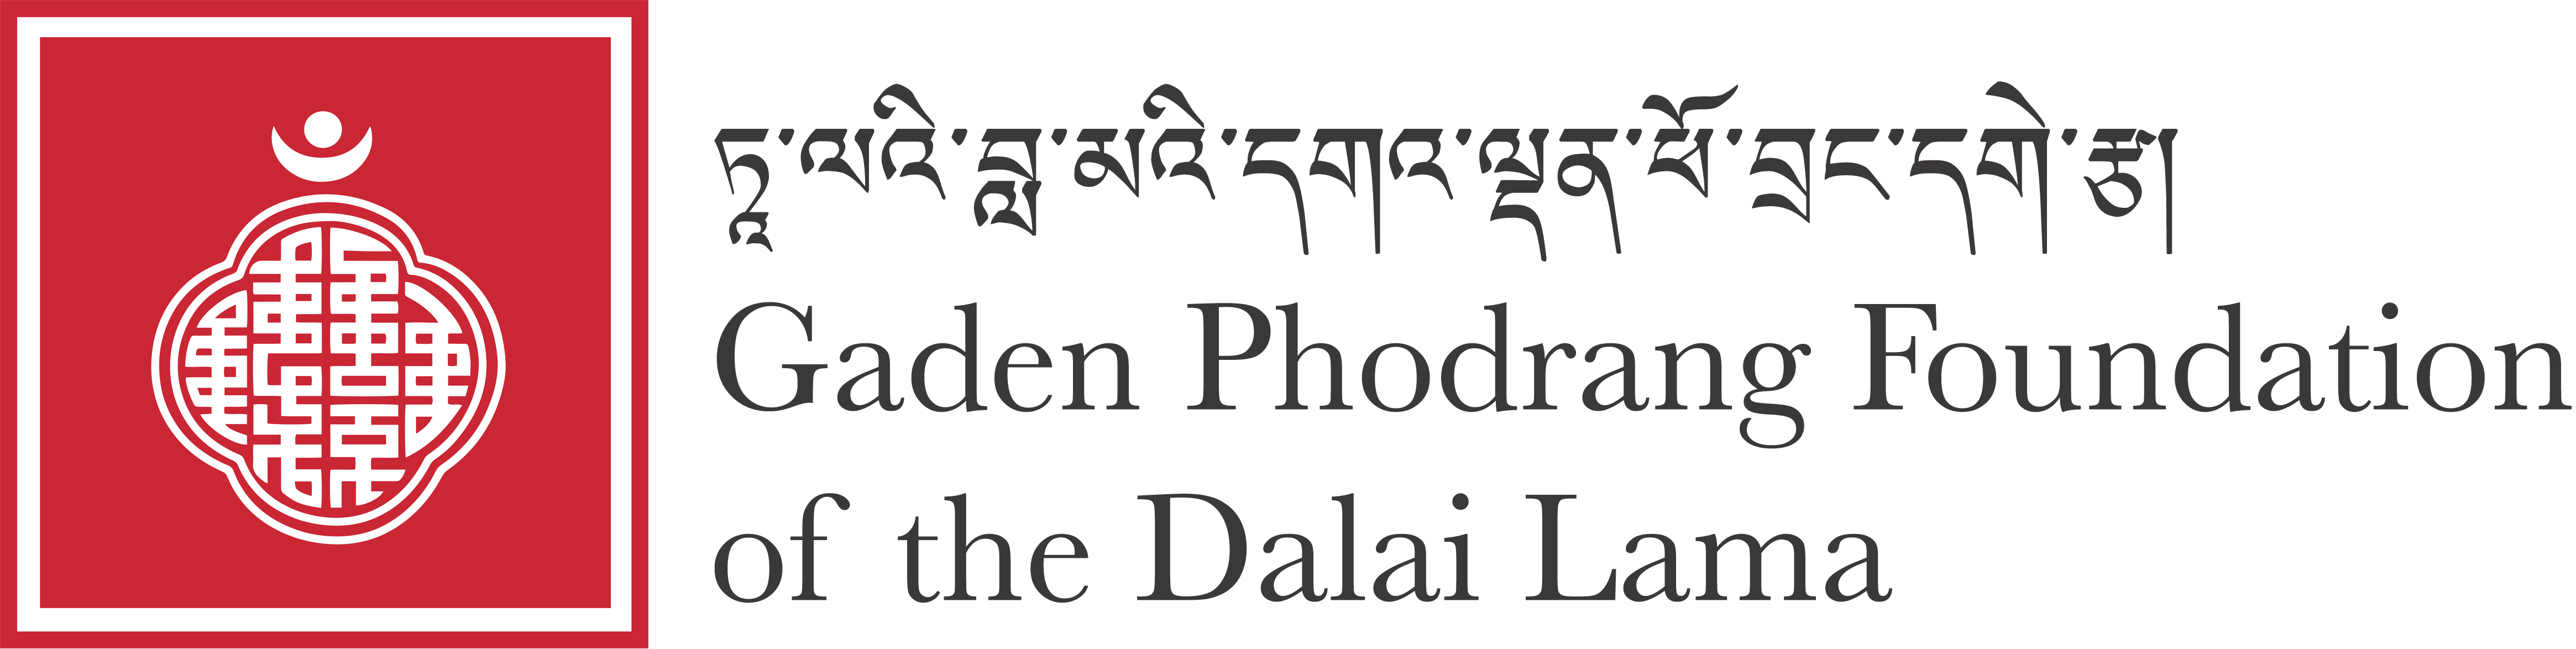 Gaden Phodrang Foundation of the Dalai Lama